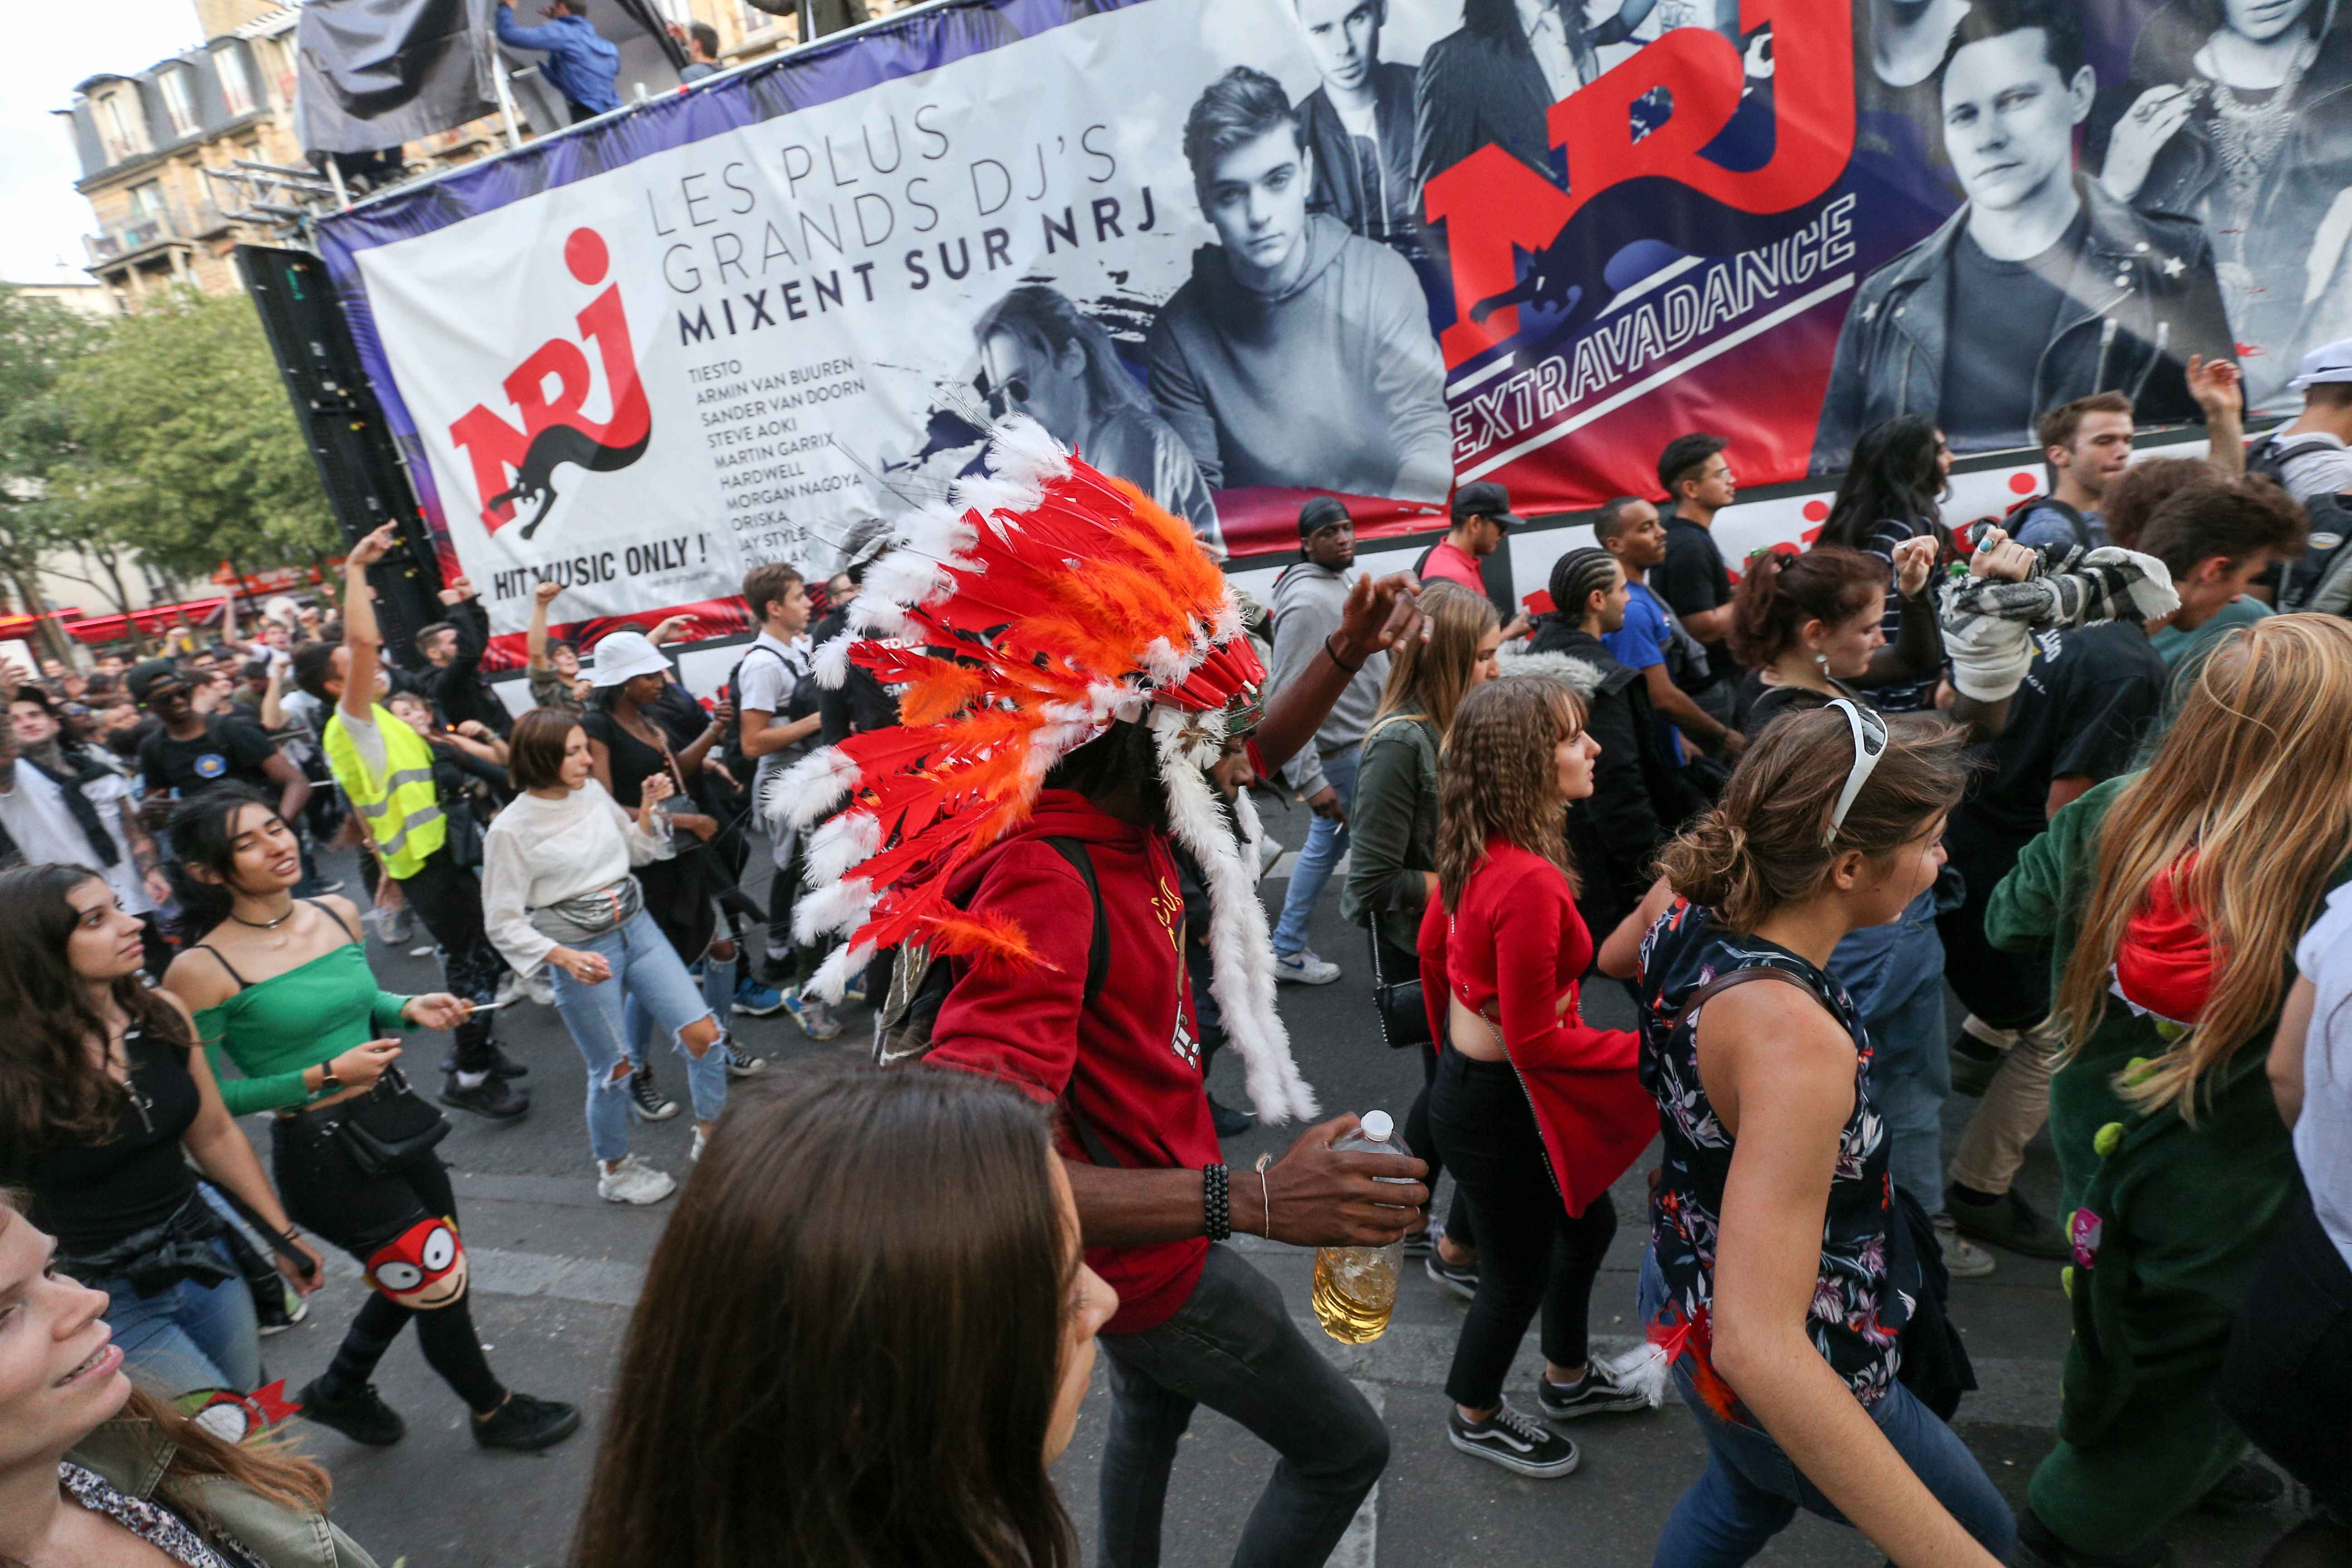 People take part in the 21st annual Techno Parade in Paris, on September 28, 2019. This year parade was dedicated to the memory of Steve Canico, a young techno fan who went missing on June 21, 2019 at an island rave in Nantes, western France, that ended in